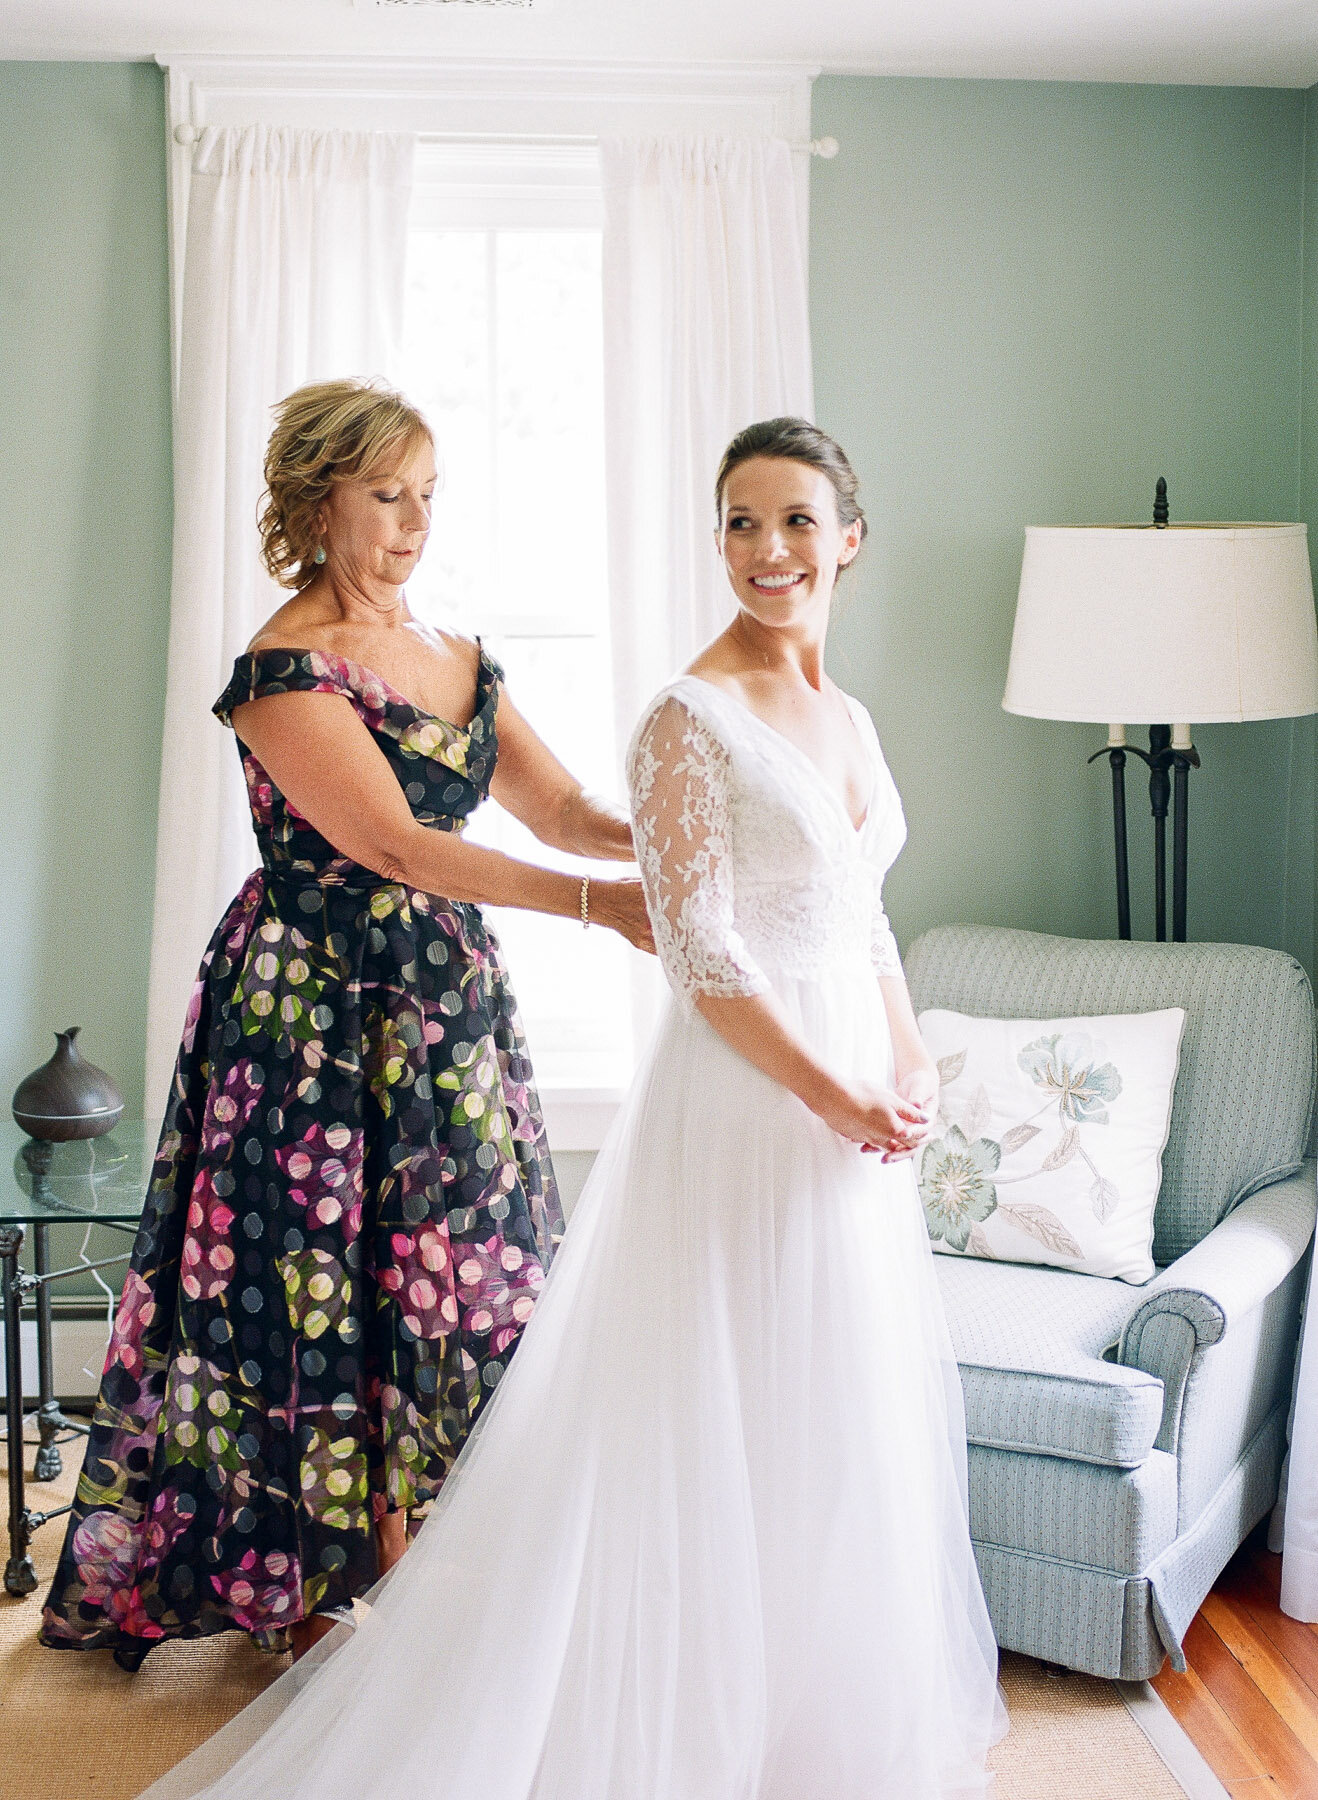 Mother of bride and bride getting dressed